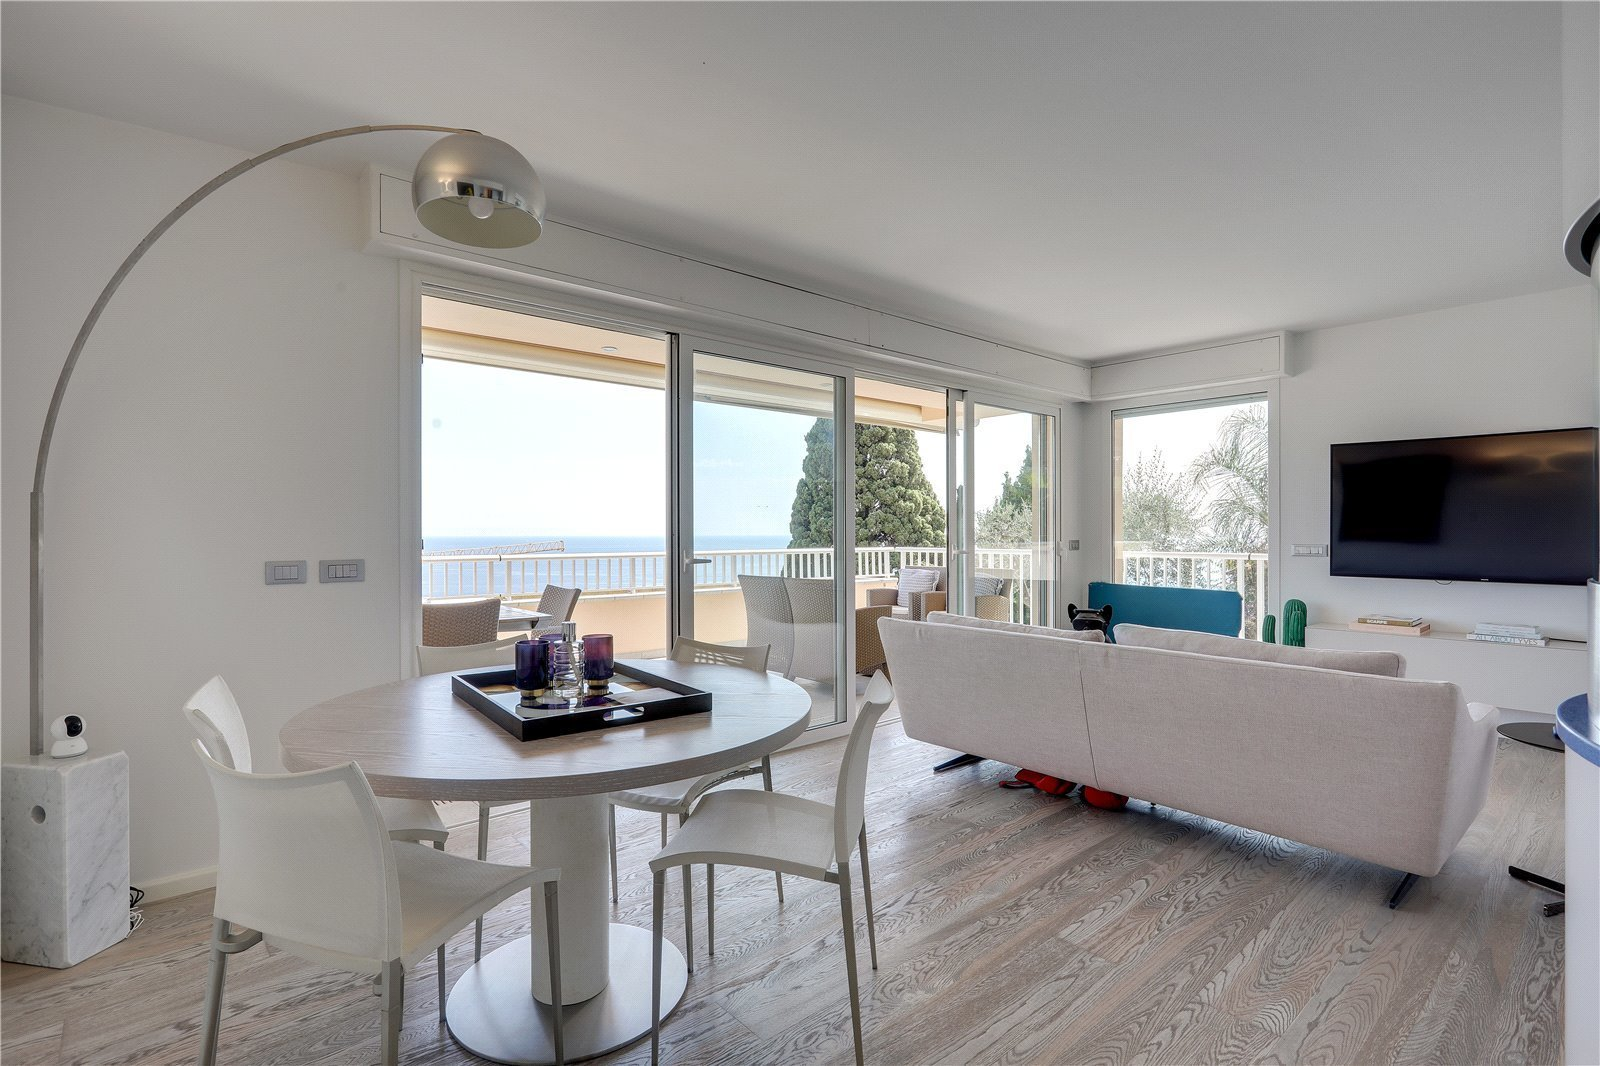 Superb two bedroom apartment with a spacious terrace and garden offering stunning panoramic sea view